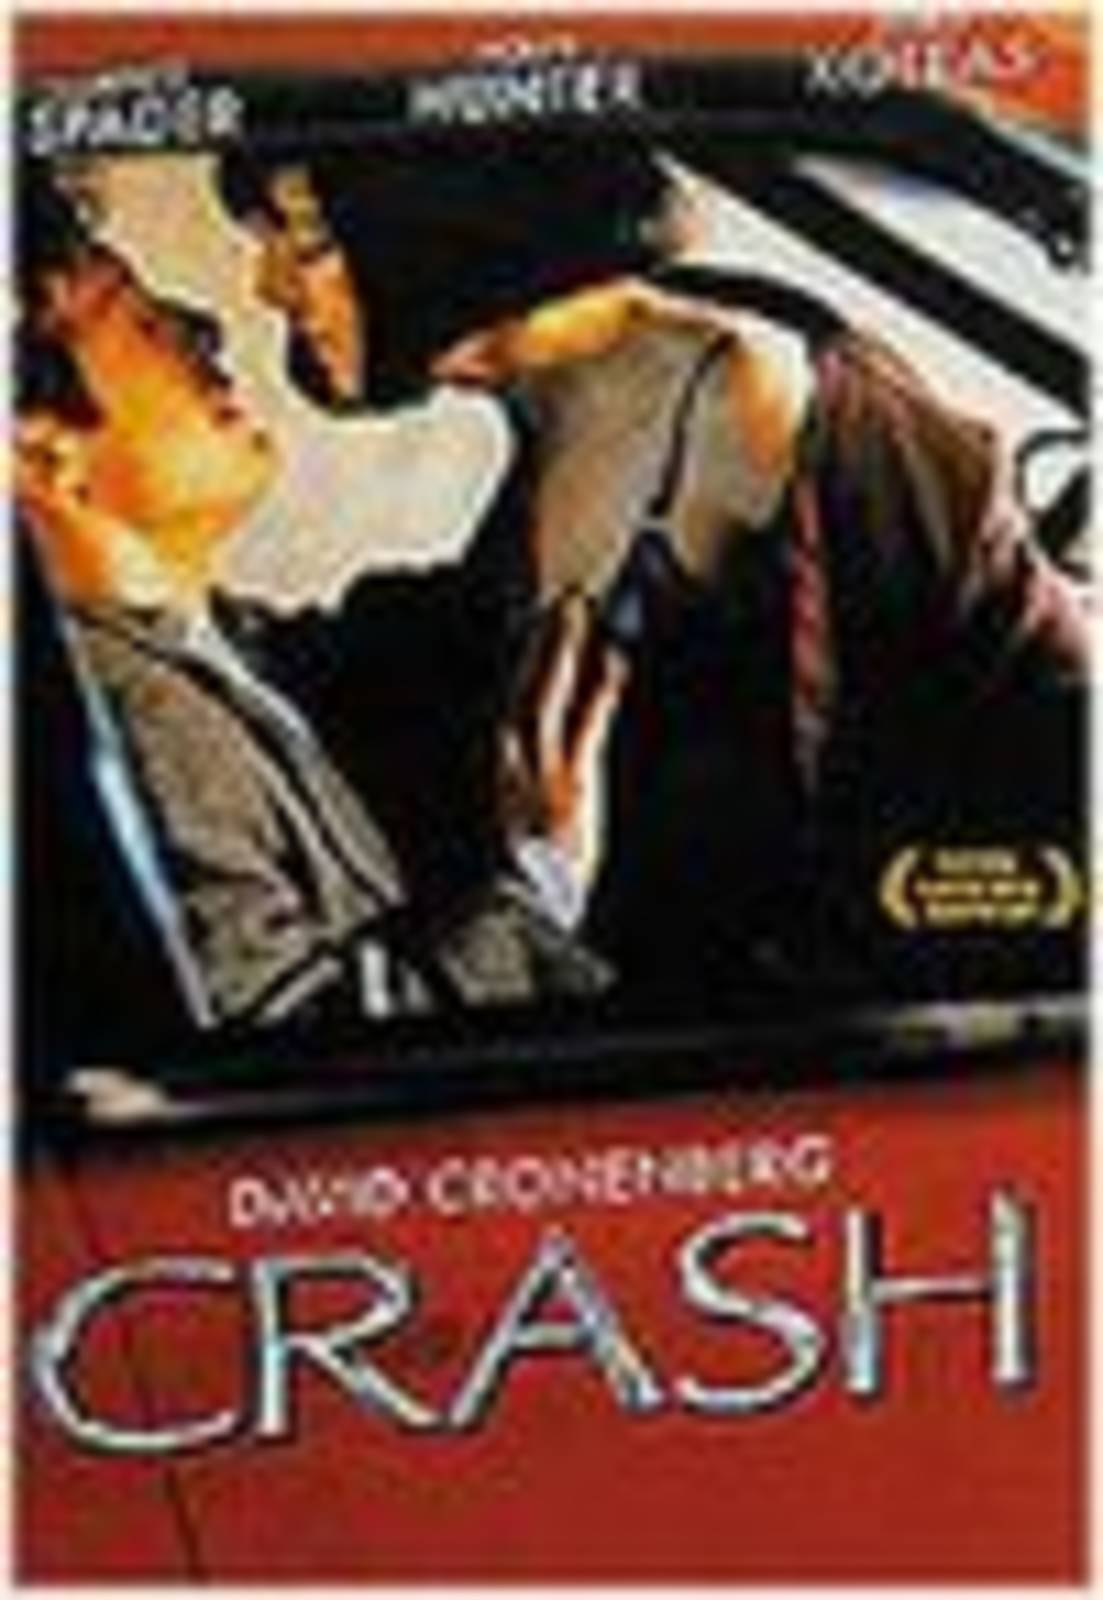 Crash movie steryotypes